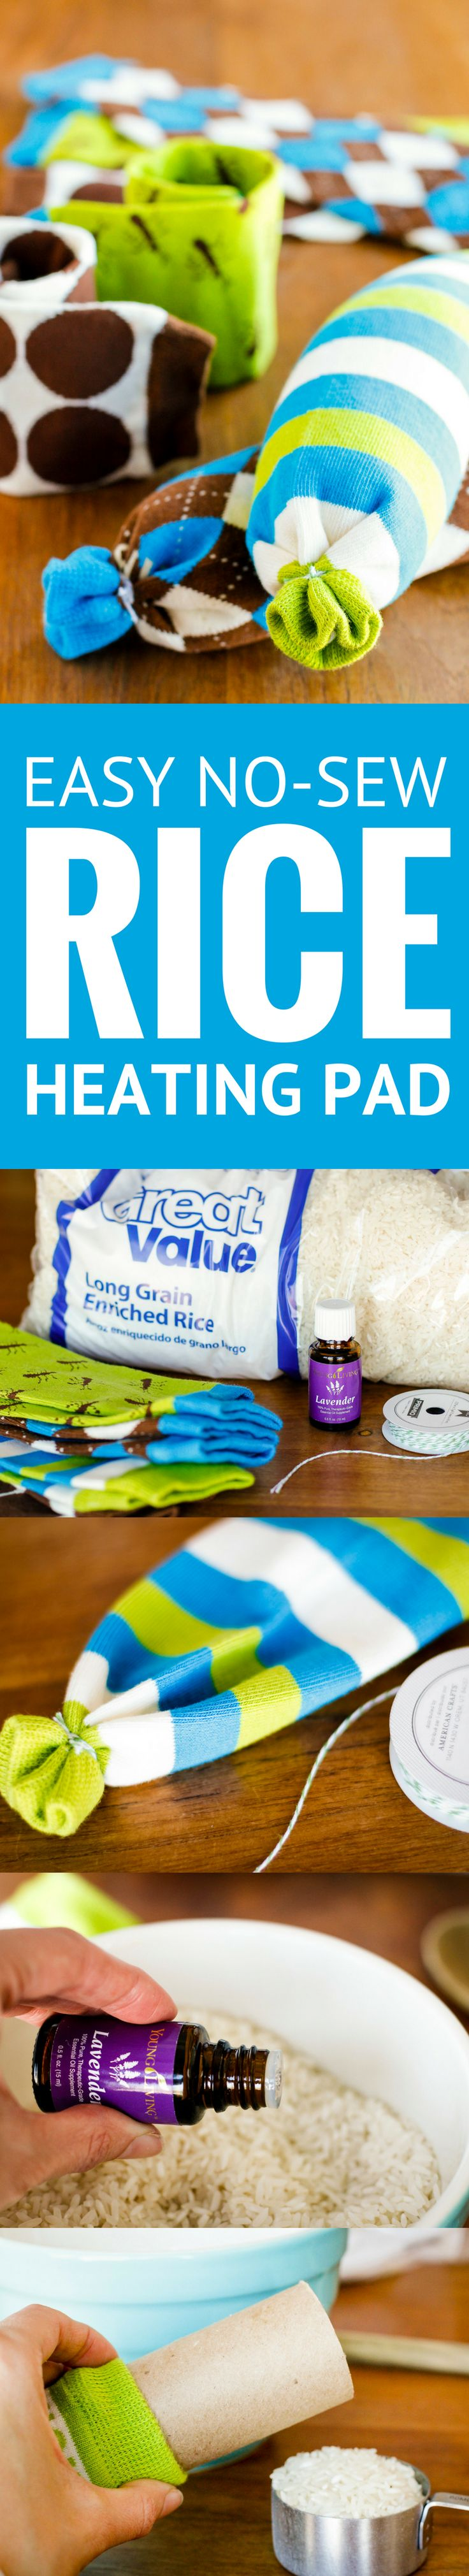 Easy No-Sew Rice Heating Pad -- Pinned nearly 100,000 times! These homemade microwavable rice heating pads took less than 5 minutes to make, start to finish! Perfect for soothing sore muscles or warming up from the cold, especially when you add a few drops of essential oil…| rice heating pad sock | rice heating pad diy | homemade hot pack | rice heating pad instructions | rice heating pad tutorial | how to make a rice heating pad | find the tutorial on unsophisticook.com